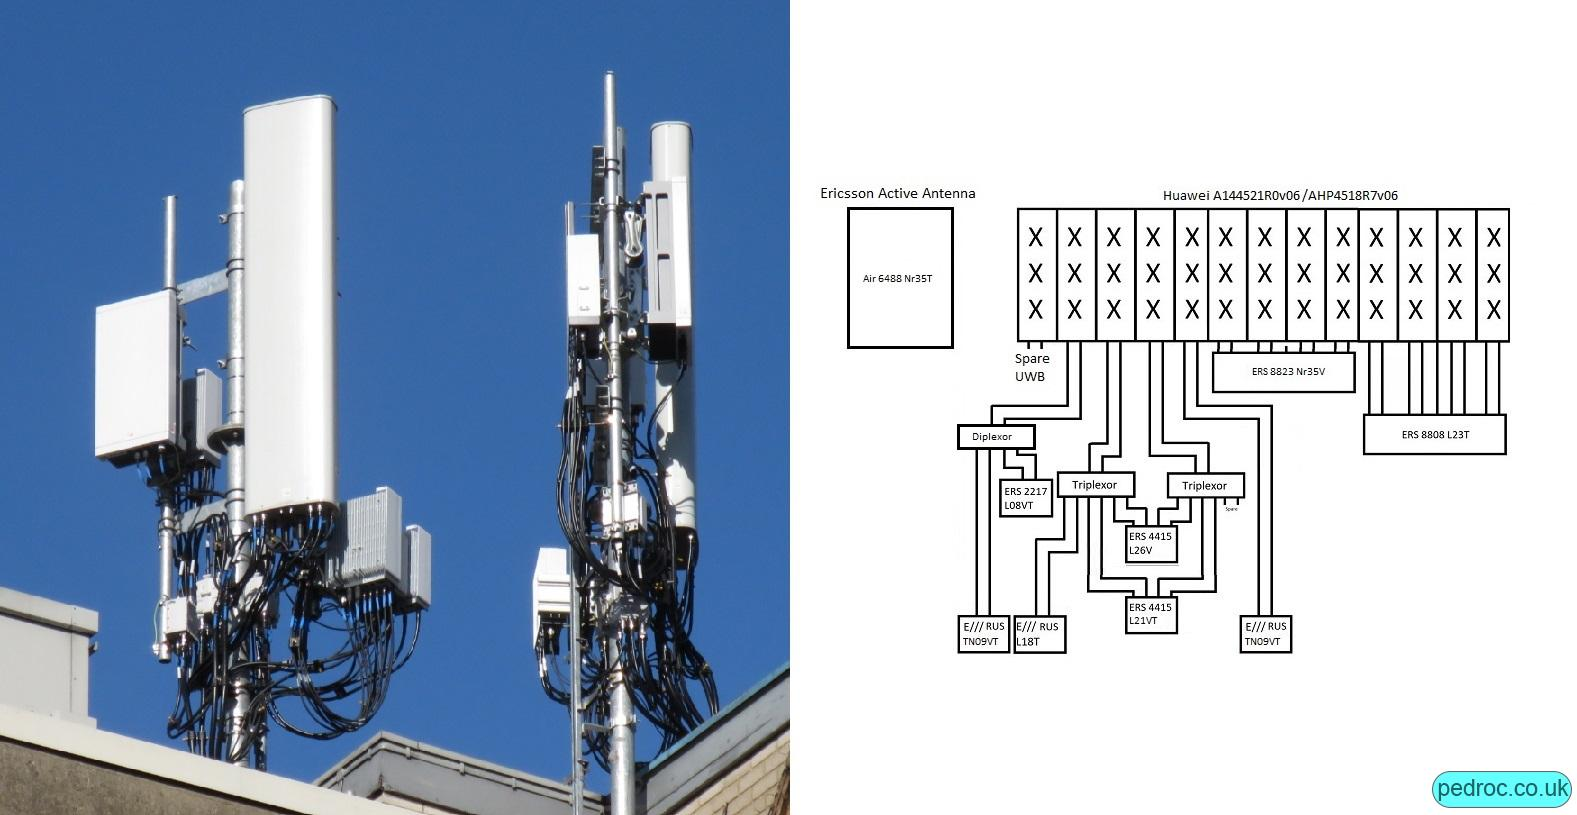 Beacon 2 dual 5G build Ericsson Radio System (ERS): ERS 8808 for O2 2300MHz, 8823 for Vodafone 5G, ERS2217 for 800MHz and ERS 4415s for Vodafone L26 4T4R and shared 2100MHz, AIR6488 Massive MIMO for O2 5G. Huawei A144521R0v06/AHP4518R7v06 passive antennas